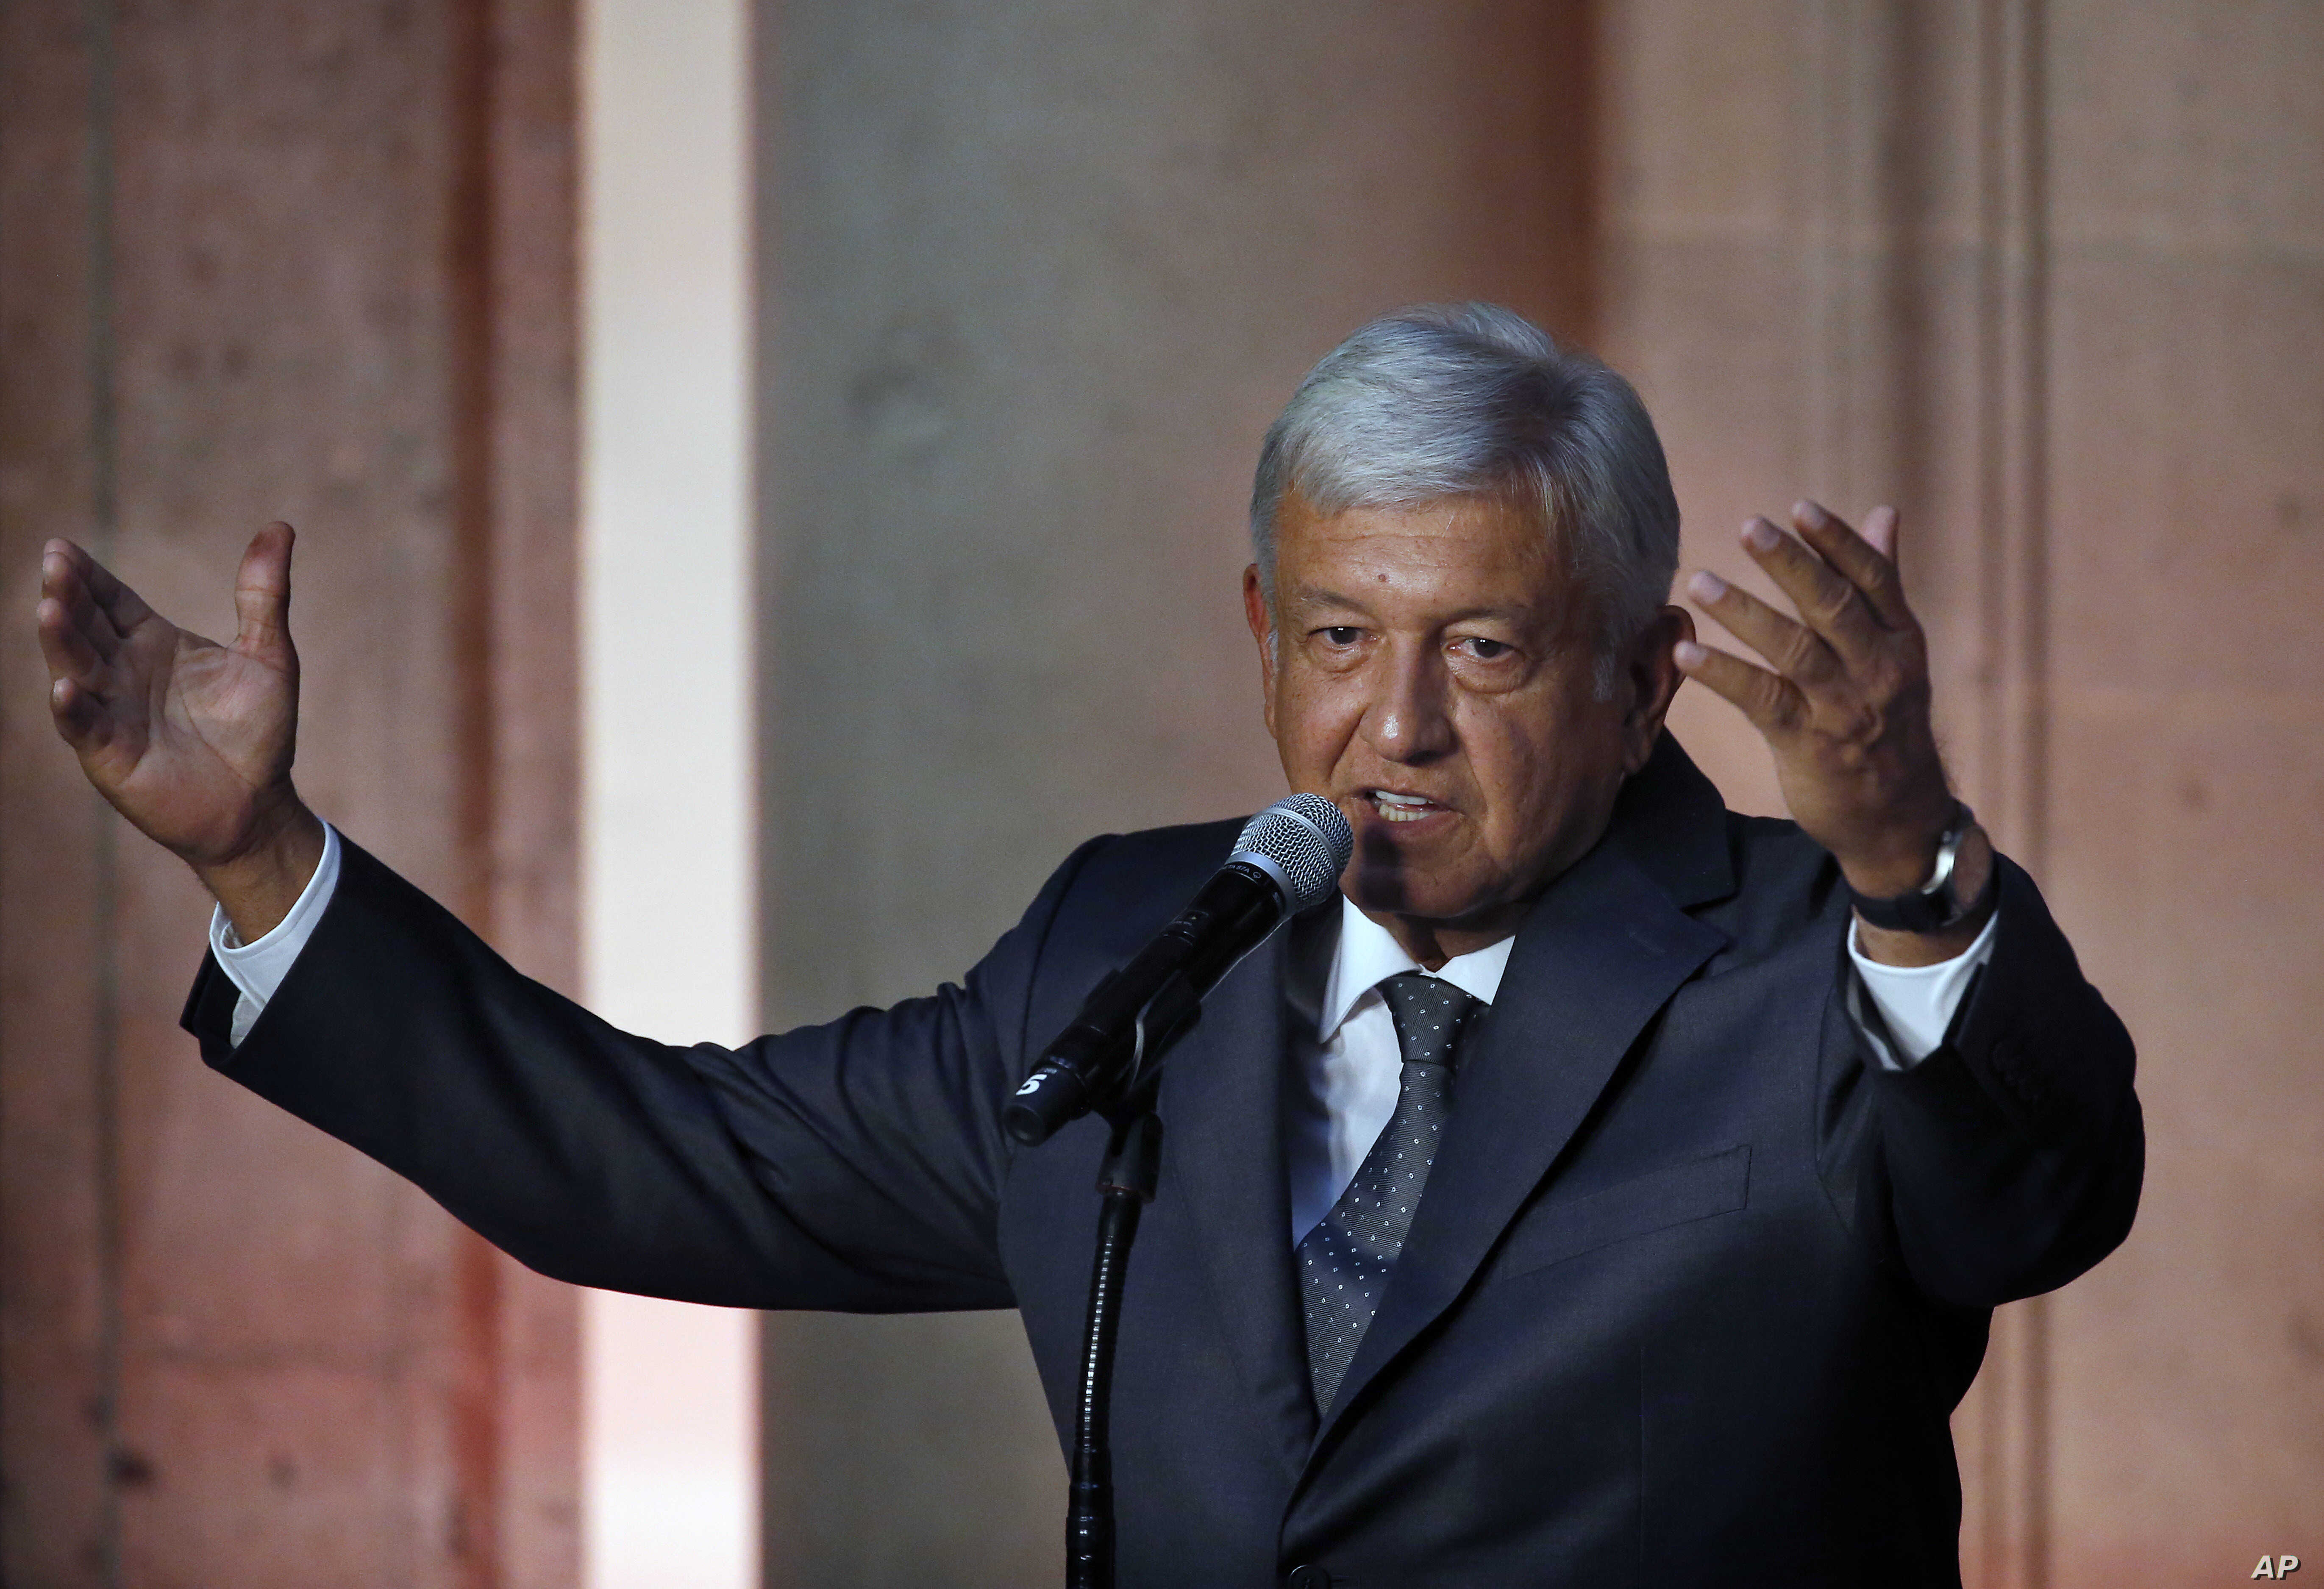 Mexico's President-elect Andres Manuel Lopez Obrador speaks to reporters after meeting with Mexico's President Enrique Pena Nieto at the National Palace in Mexico City, July 3, 2018.